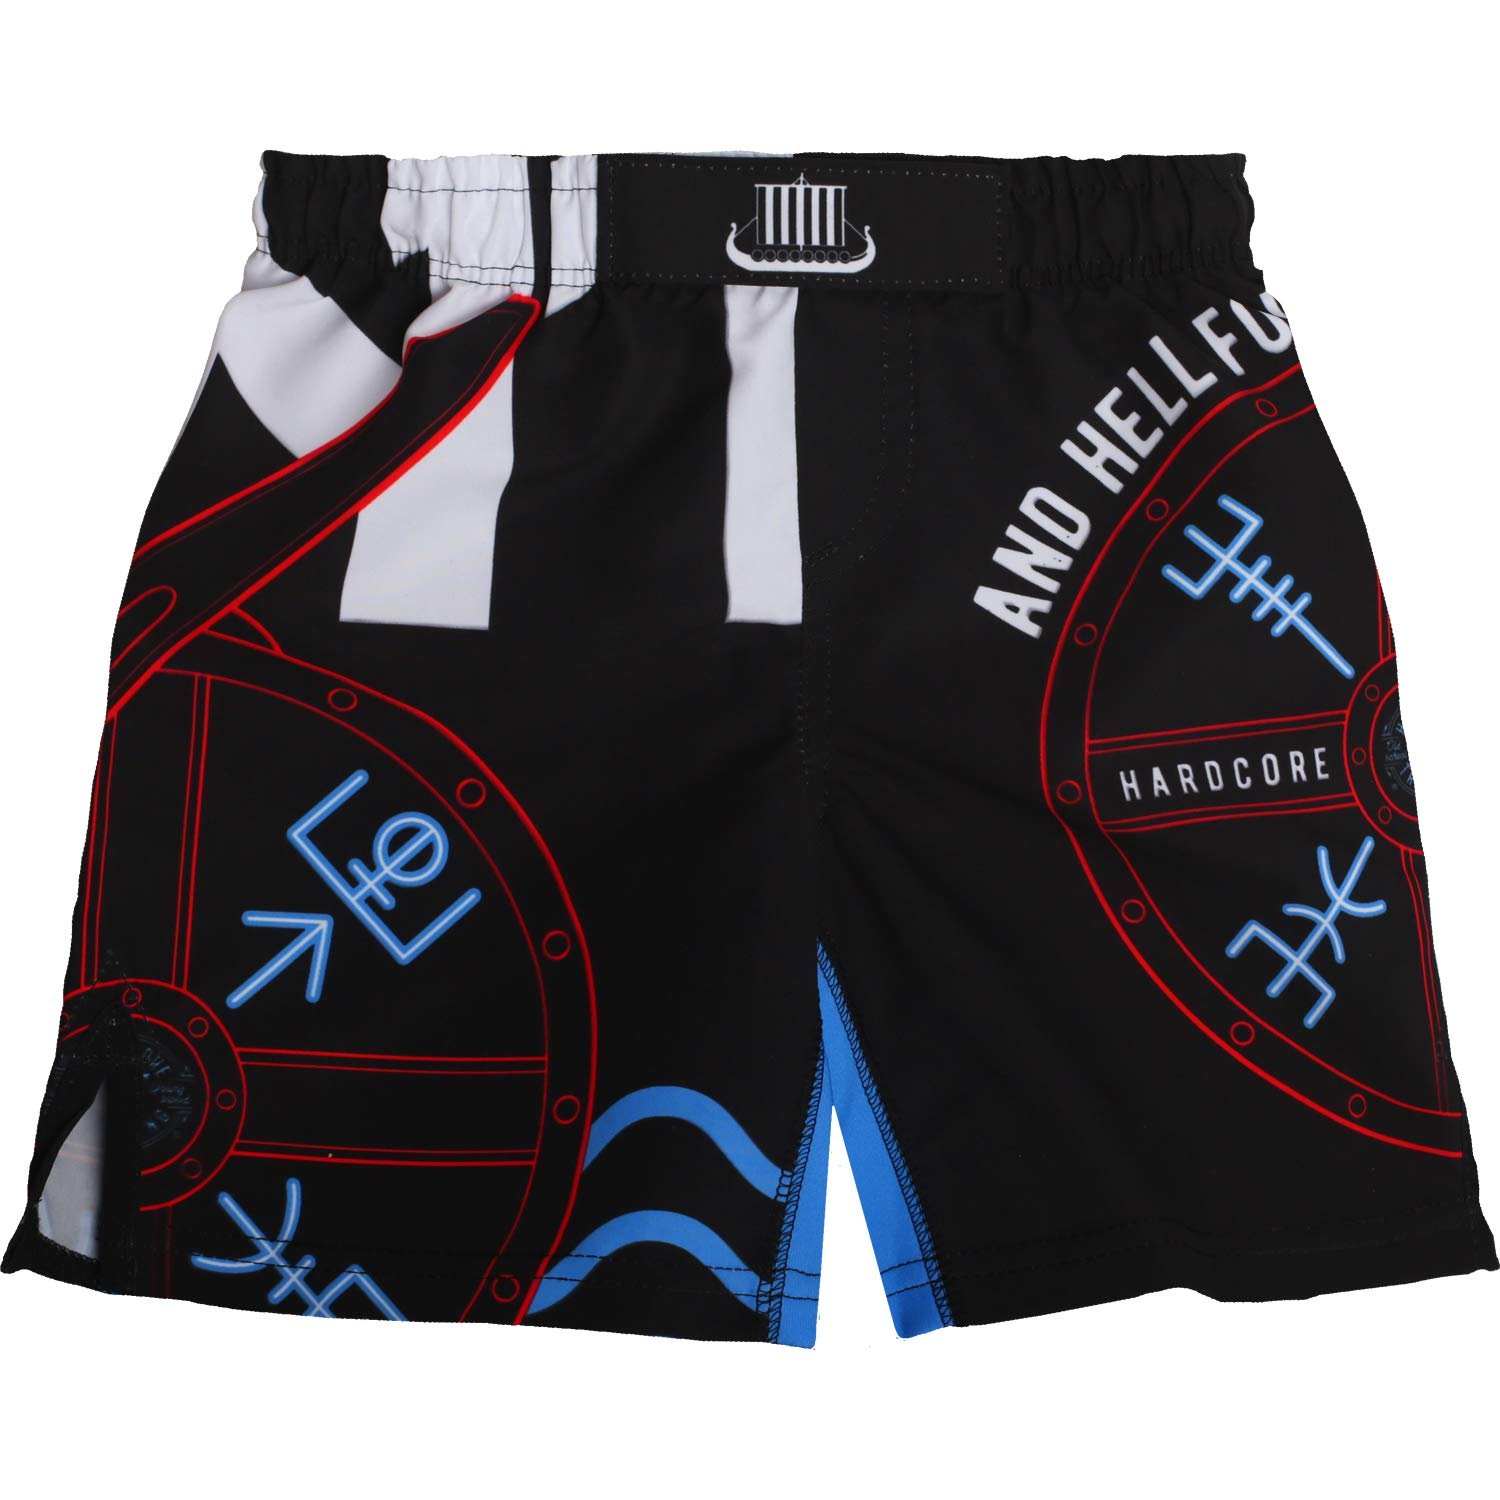 Hardcore Training Kids Boxing Shorts for Boy Norman - Fighting Fitness BJJ Active-10 Years Black/Blue